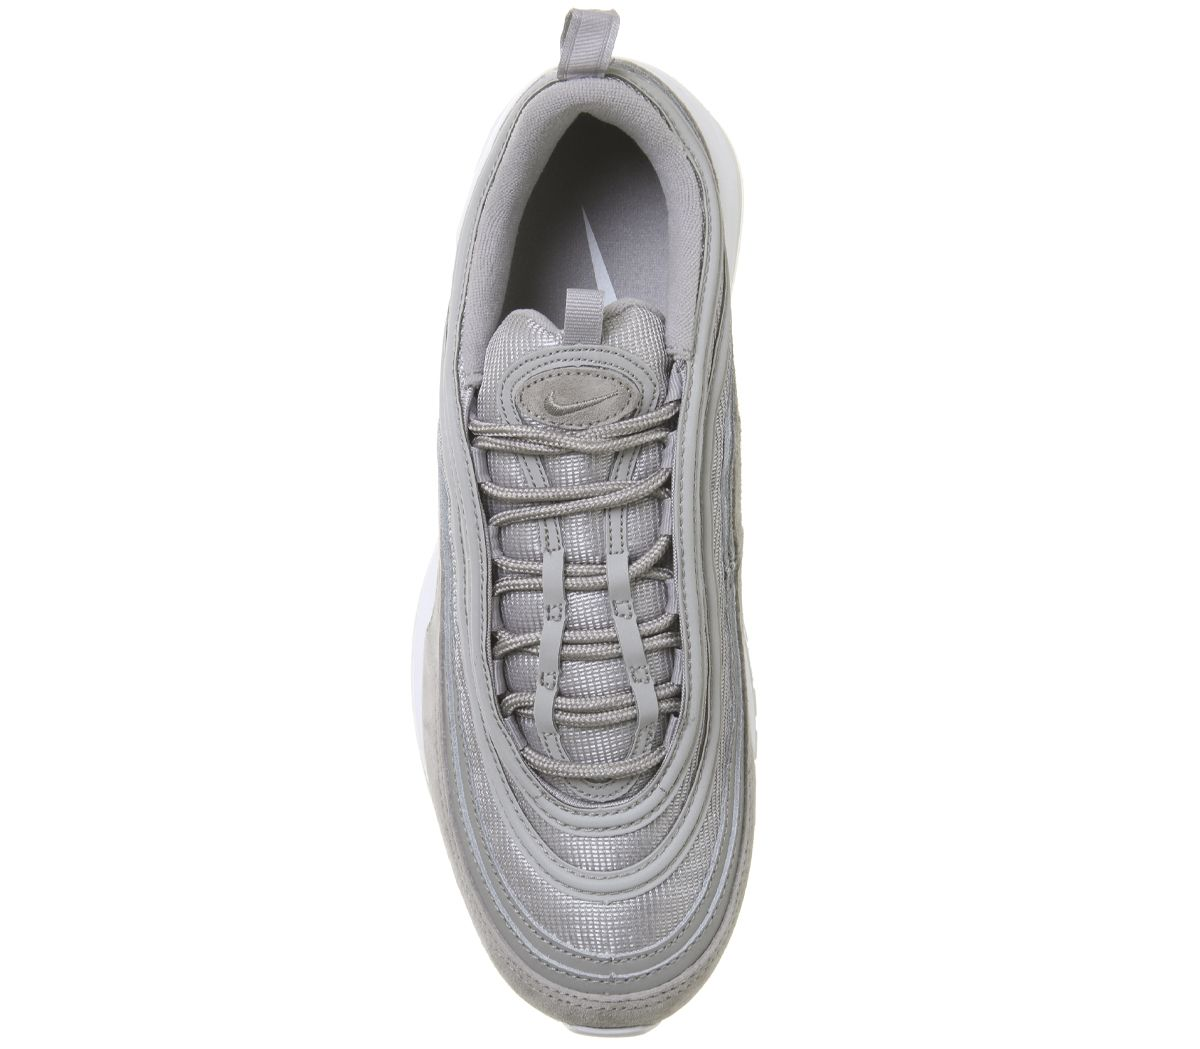 72d1860285 Nike Air Max 97 Trainers Cobblestone White - His trainers